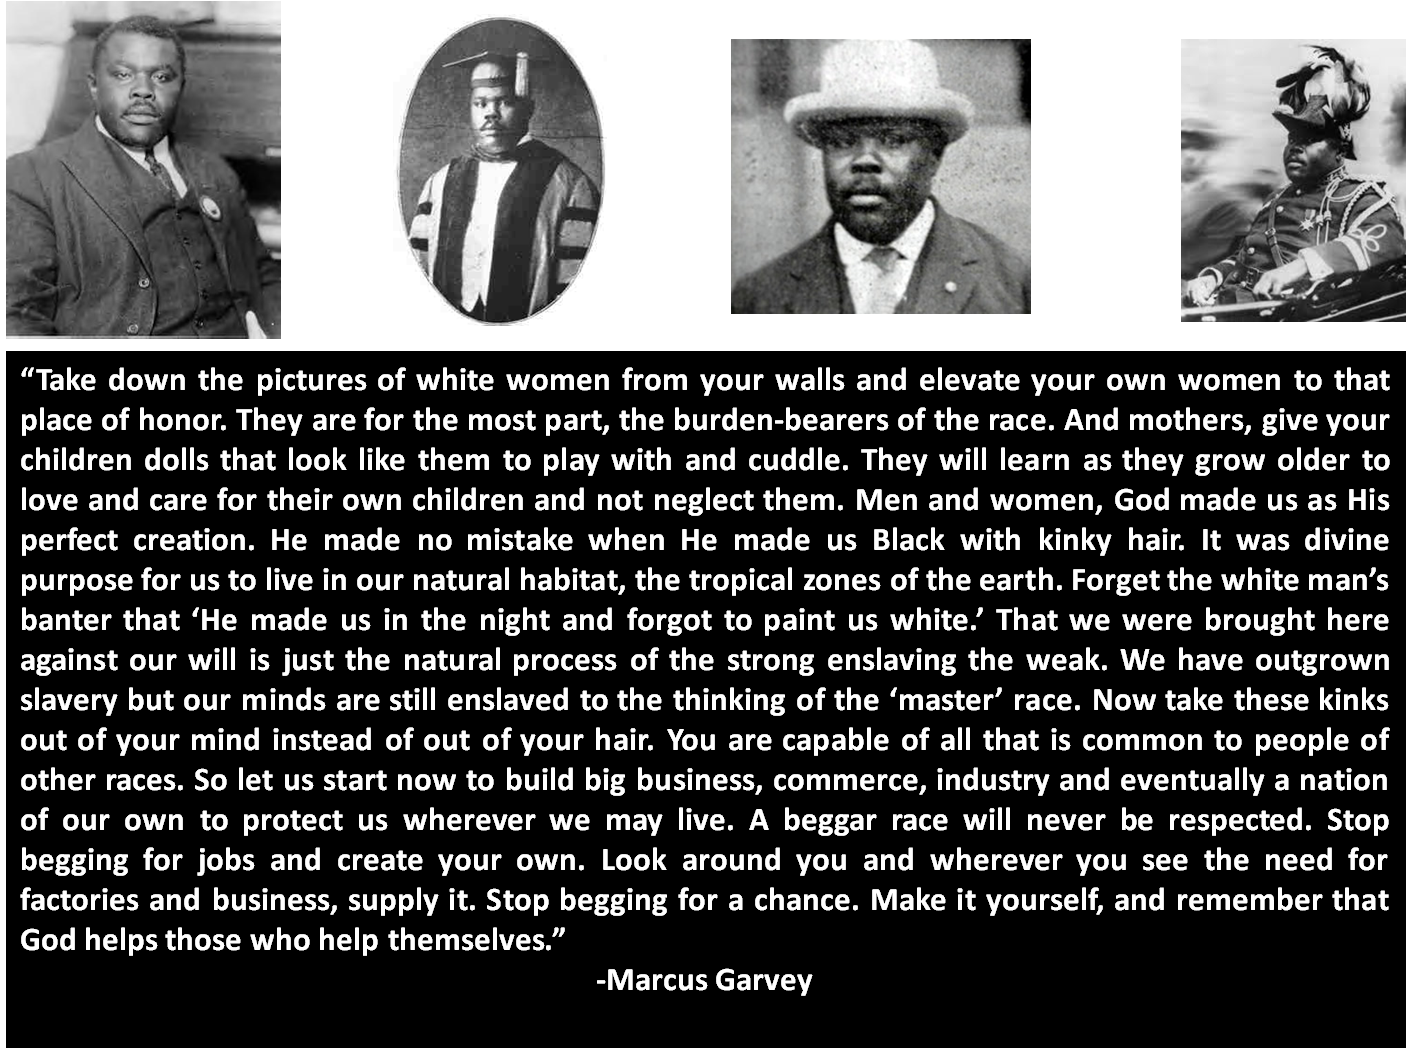 boardwalk empire and it s portrayal of black leadership my true garvey wisdom